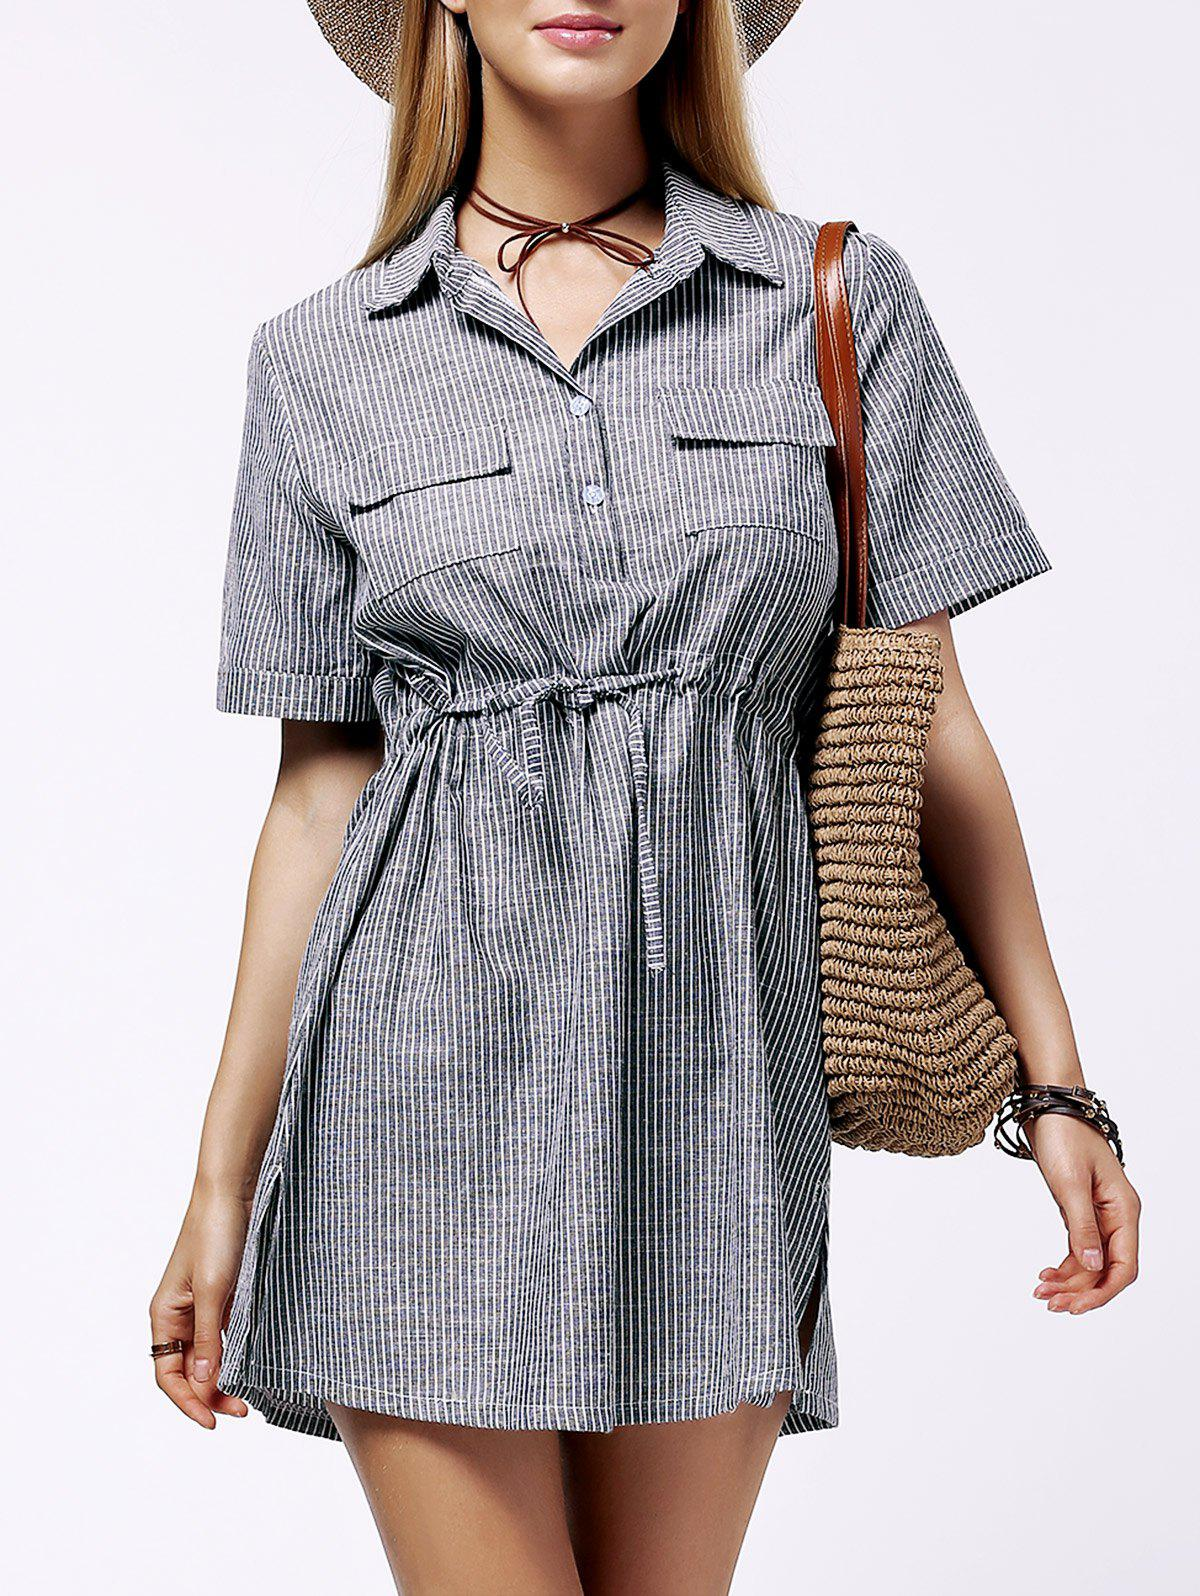 Stylish Women's Plus Size Shirt Collar Striped Dress